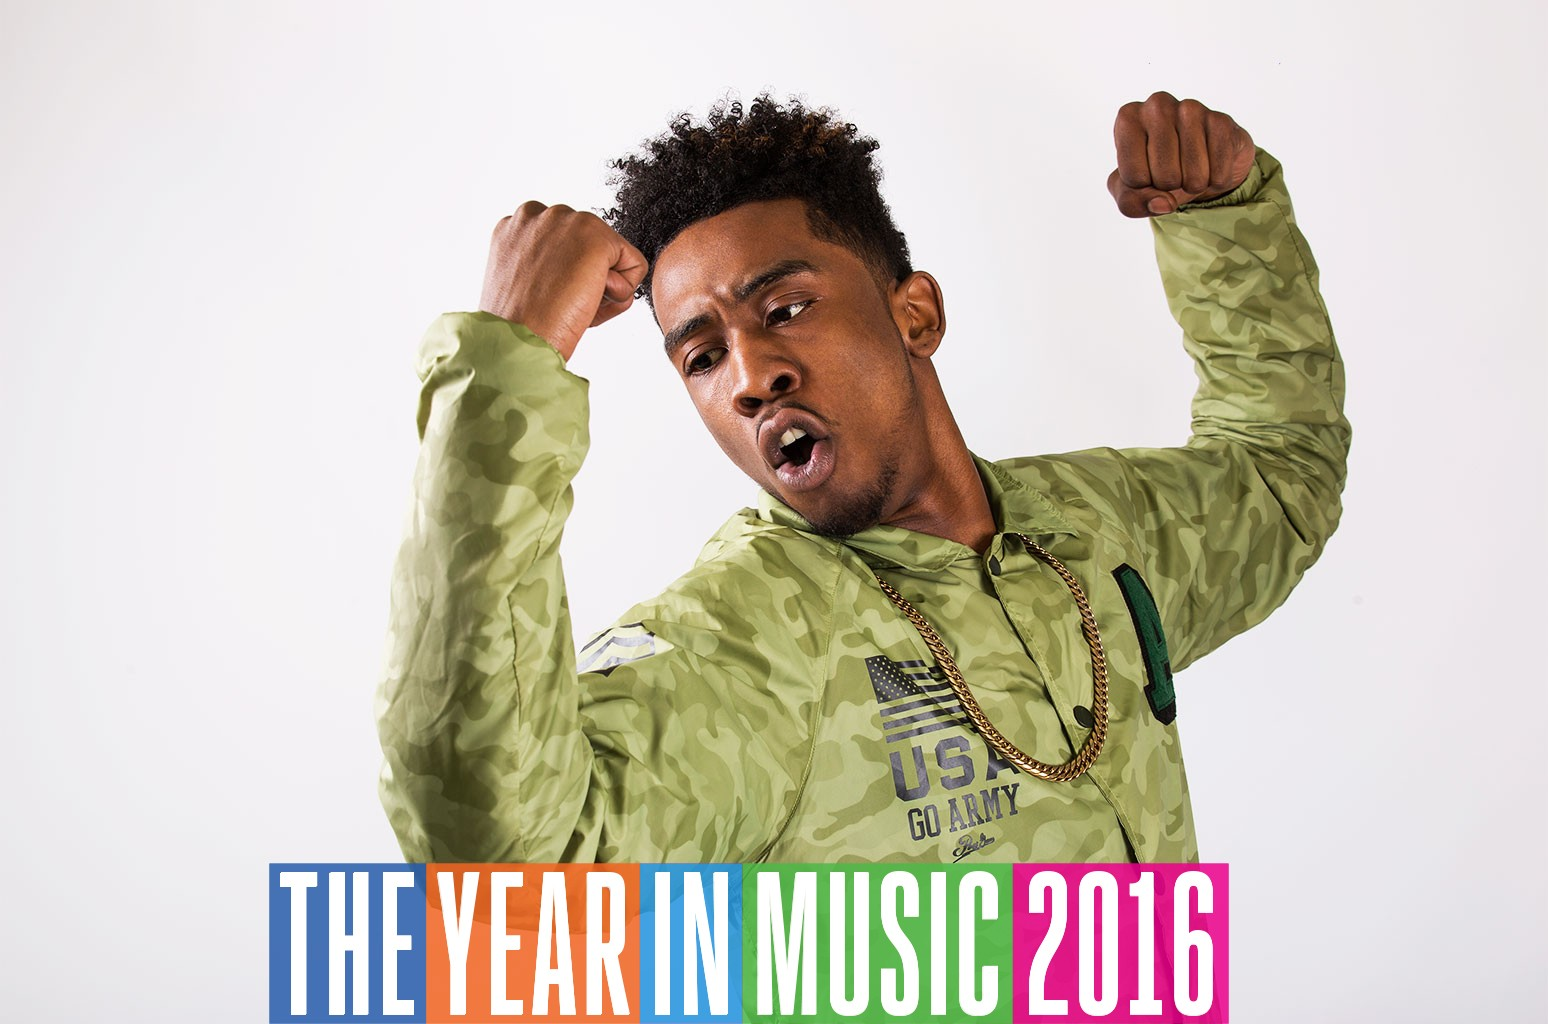 Desiigner photographed in 2016.